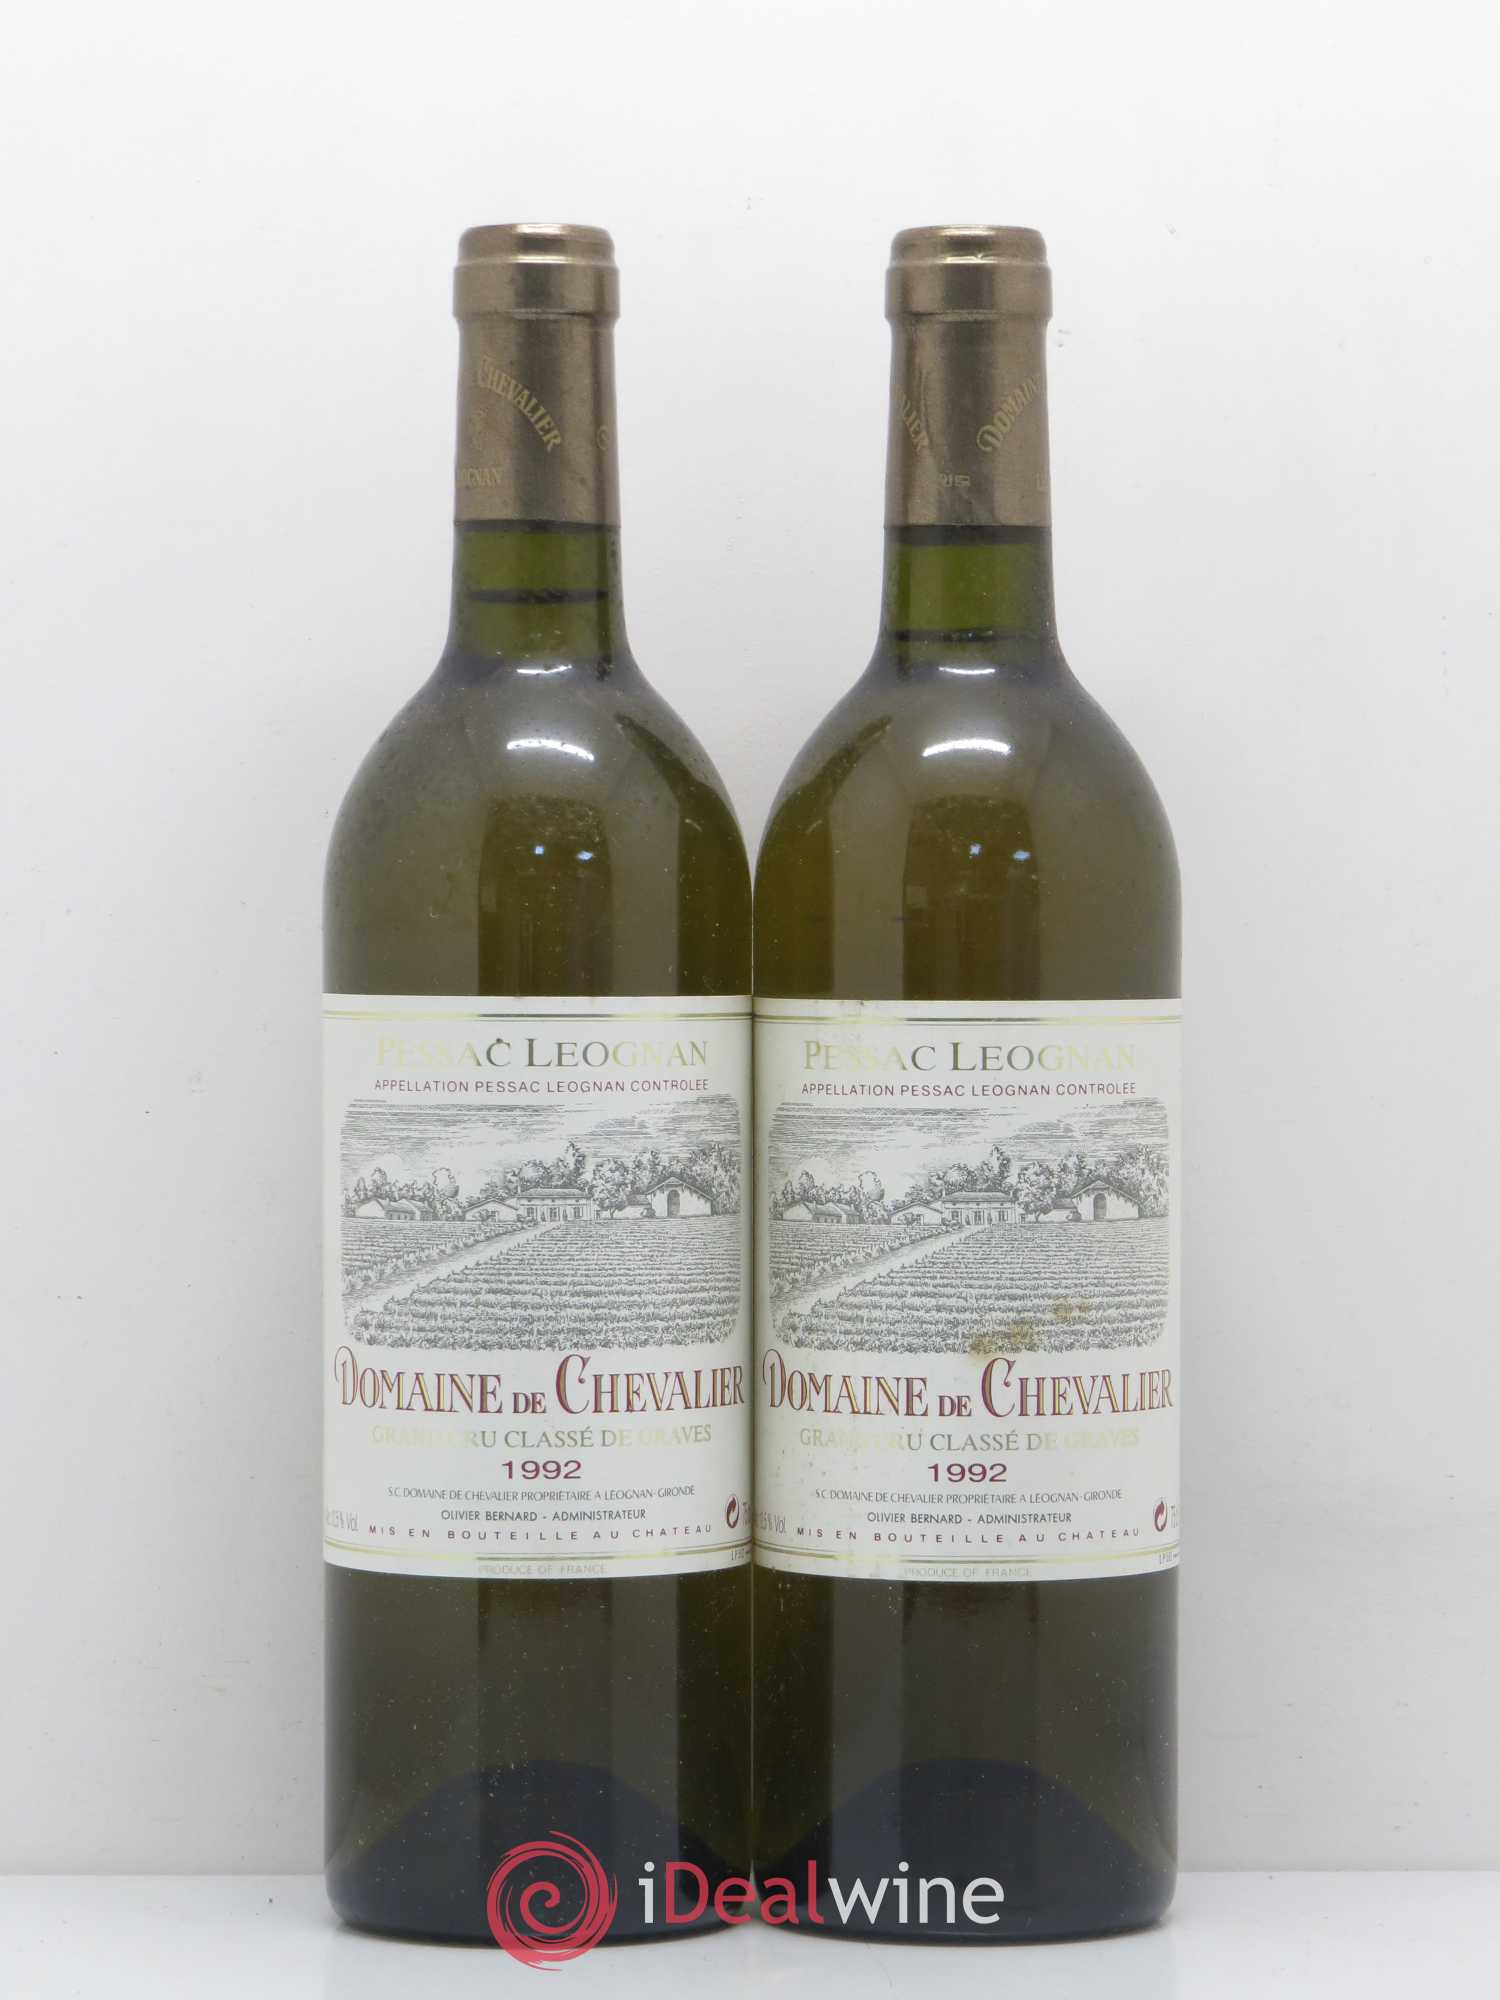 Domaine de Chevalier Cru Classé de Graves  1992 - Lot of 2 Bottles